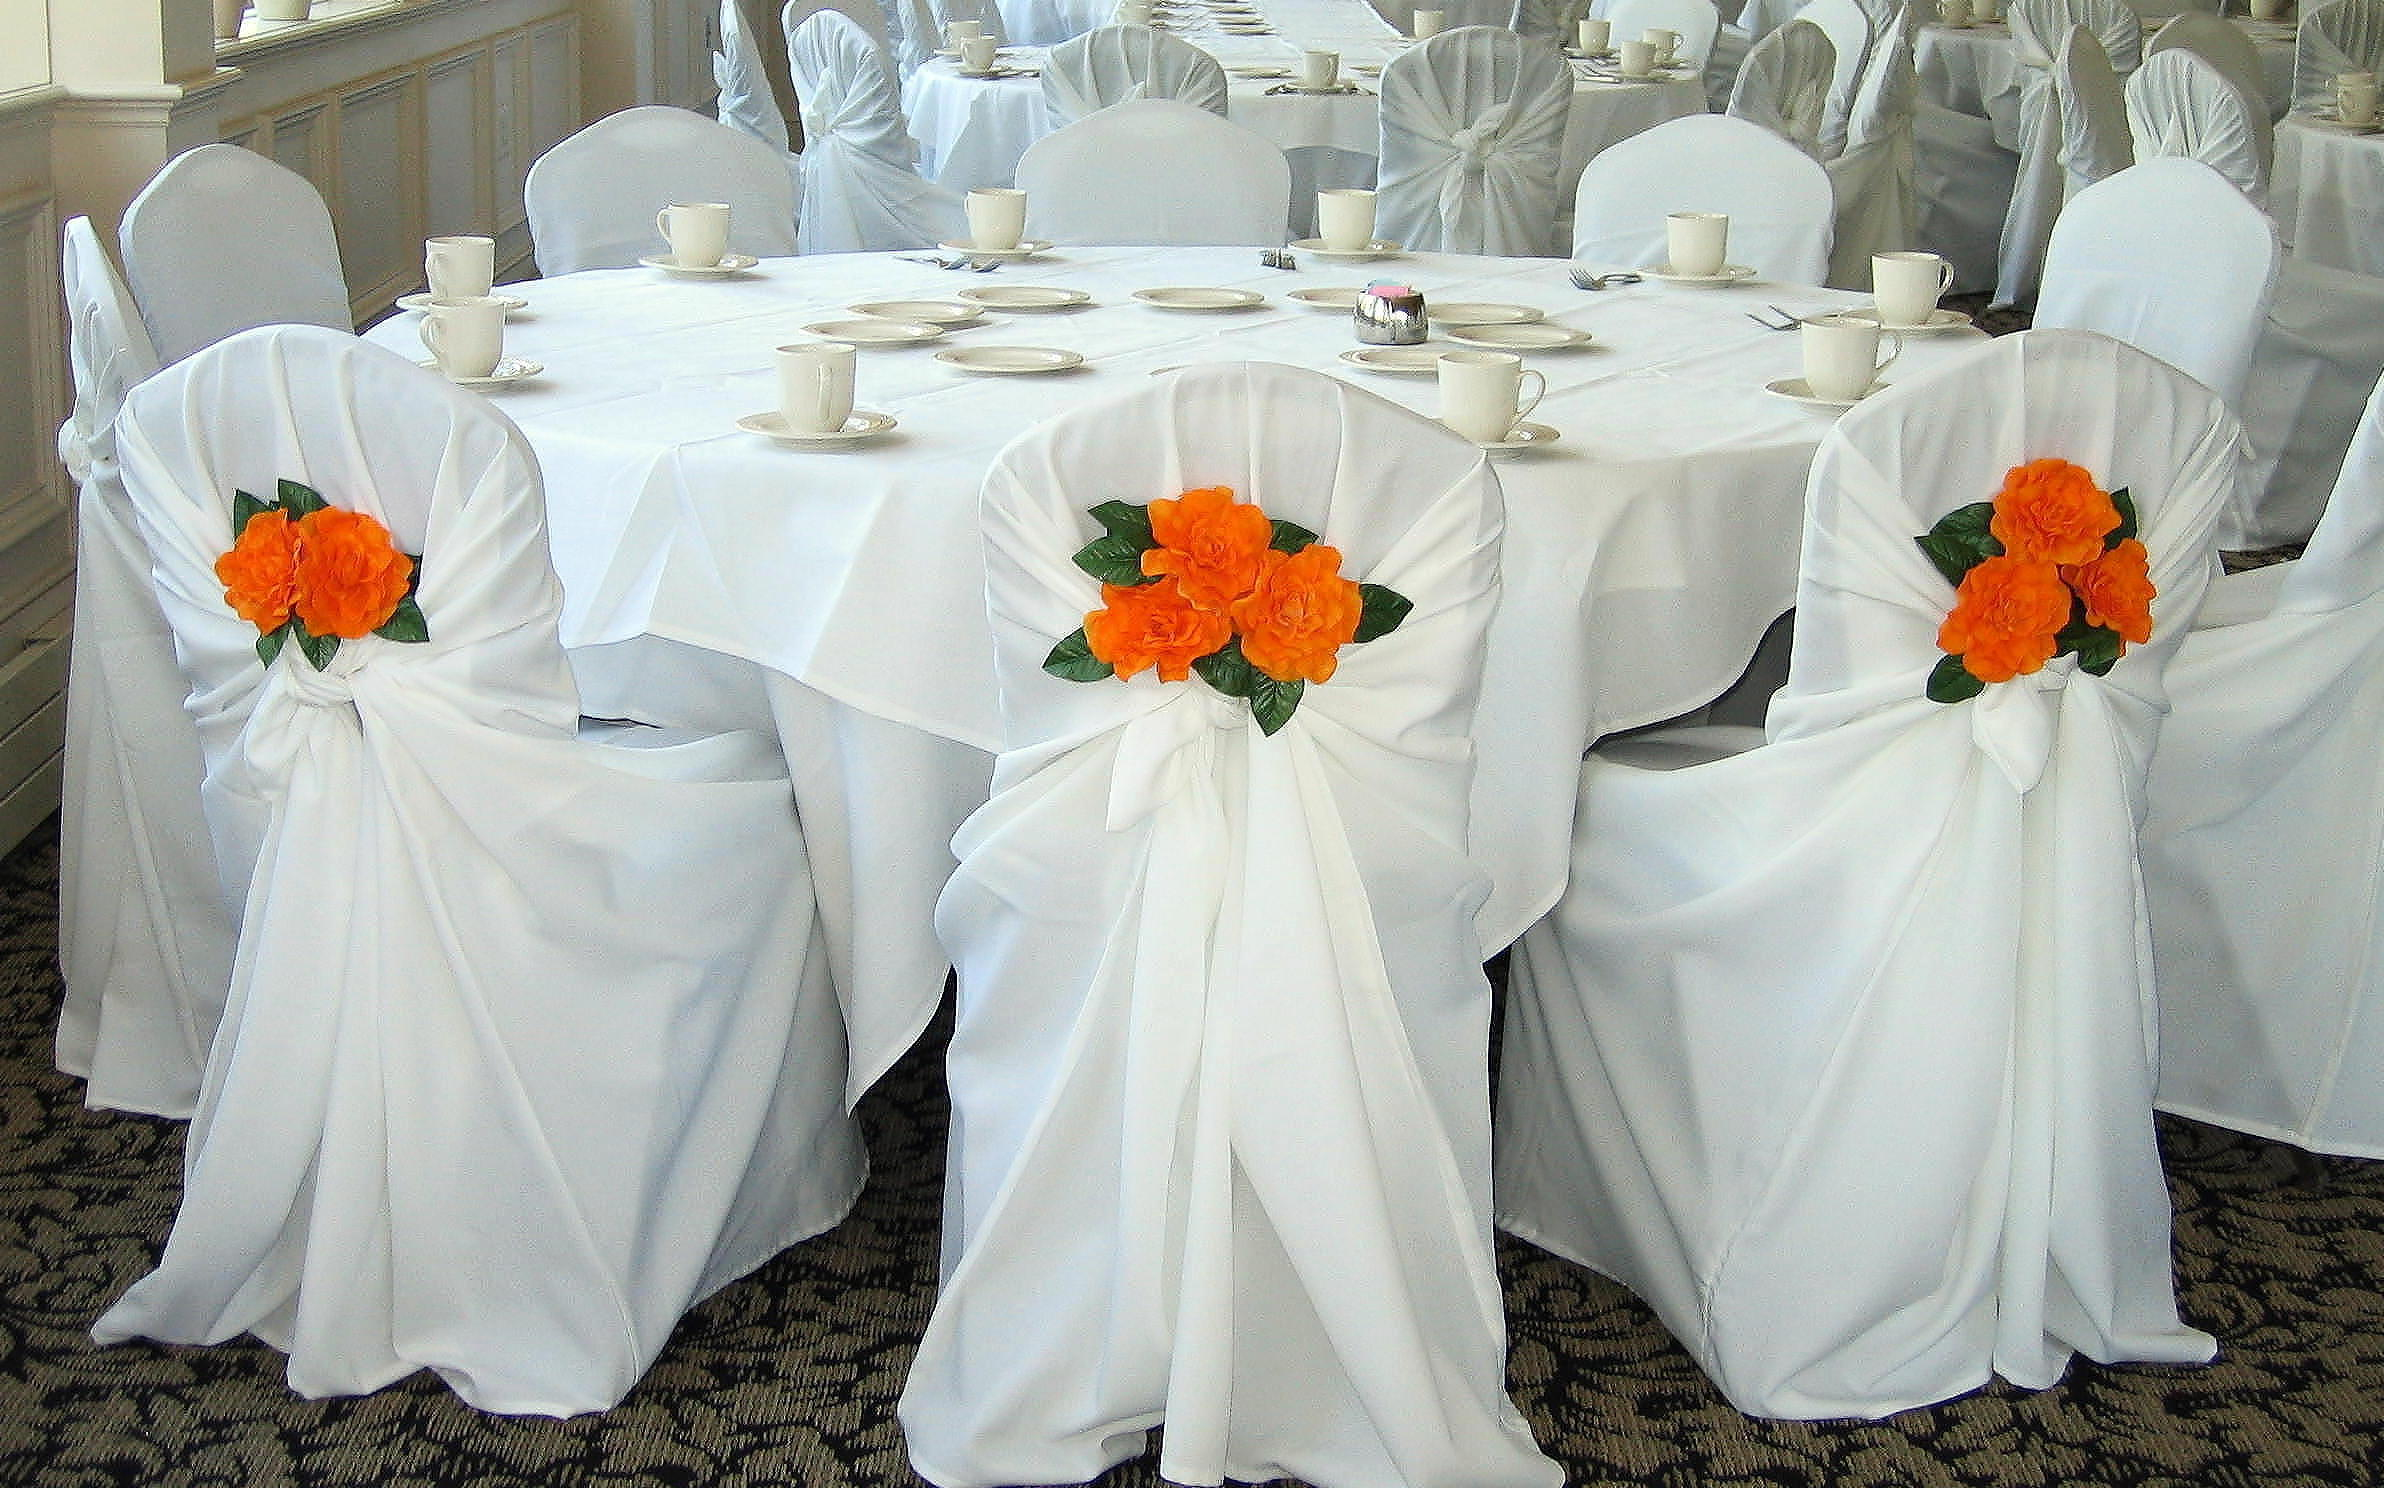 chair covers infant to toddler dreams sterling heights rent